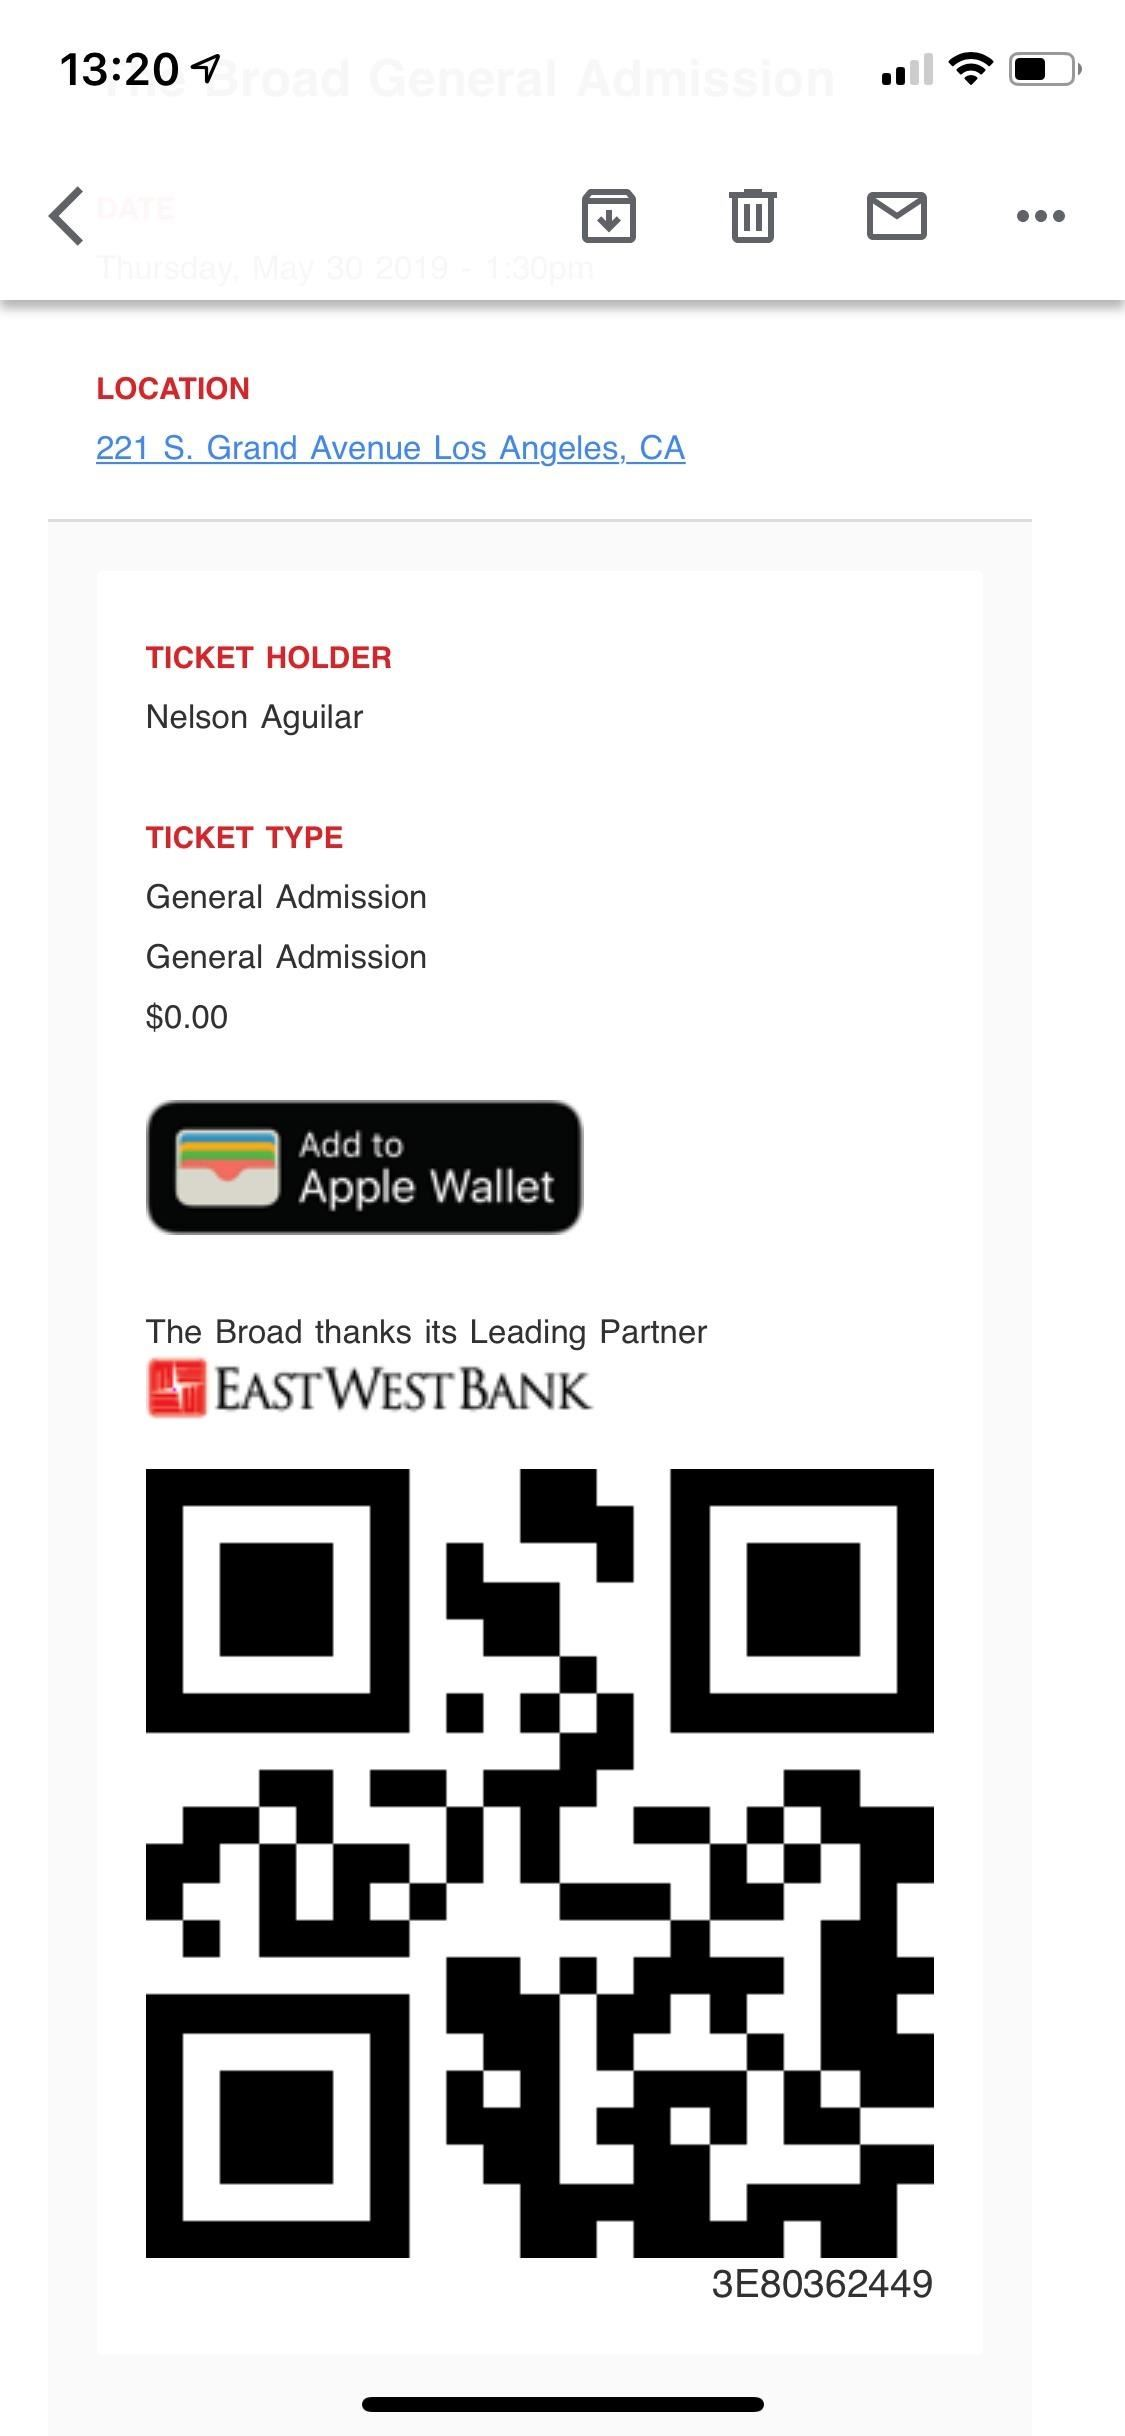 How to Add Passes, Tickets, Rewards, Coupons, Gift Cards, IDs & More to Apple Wallet for iPhone